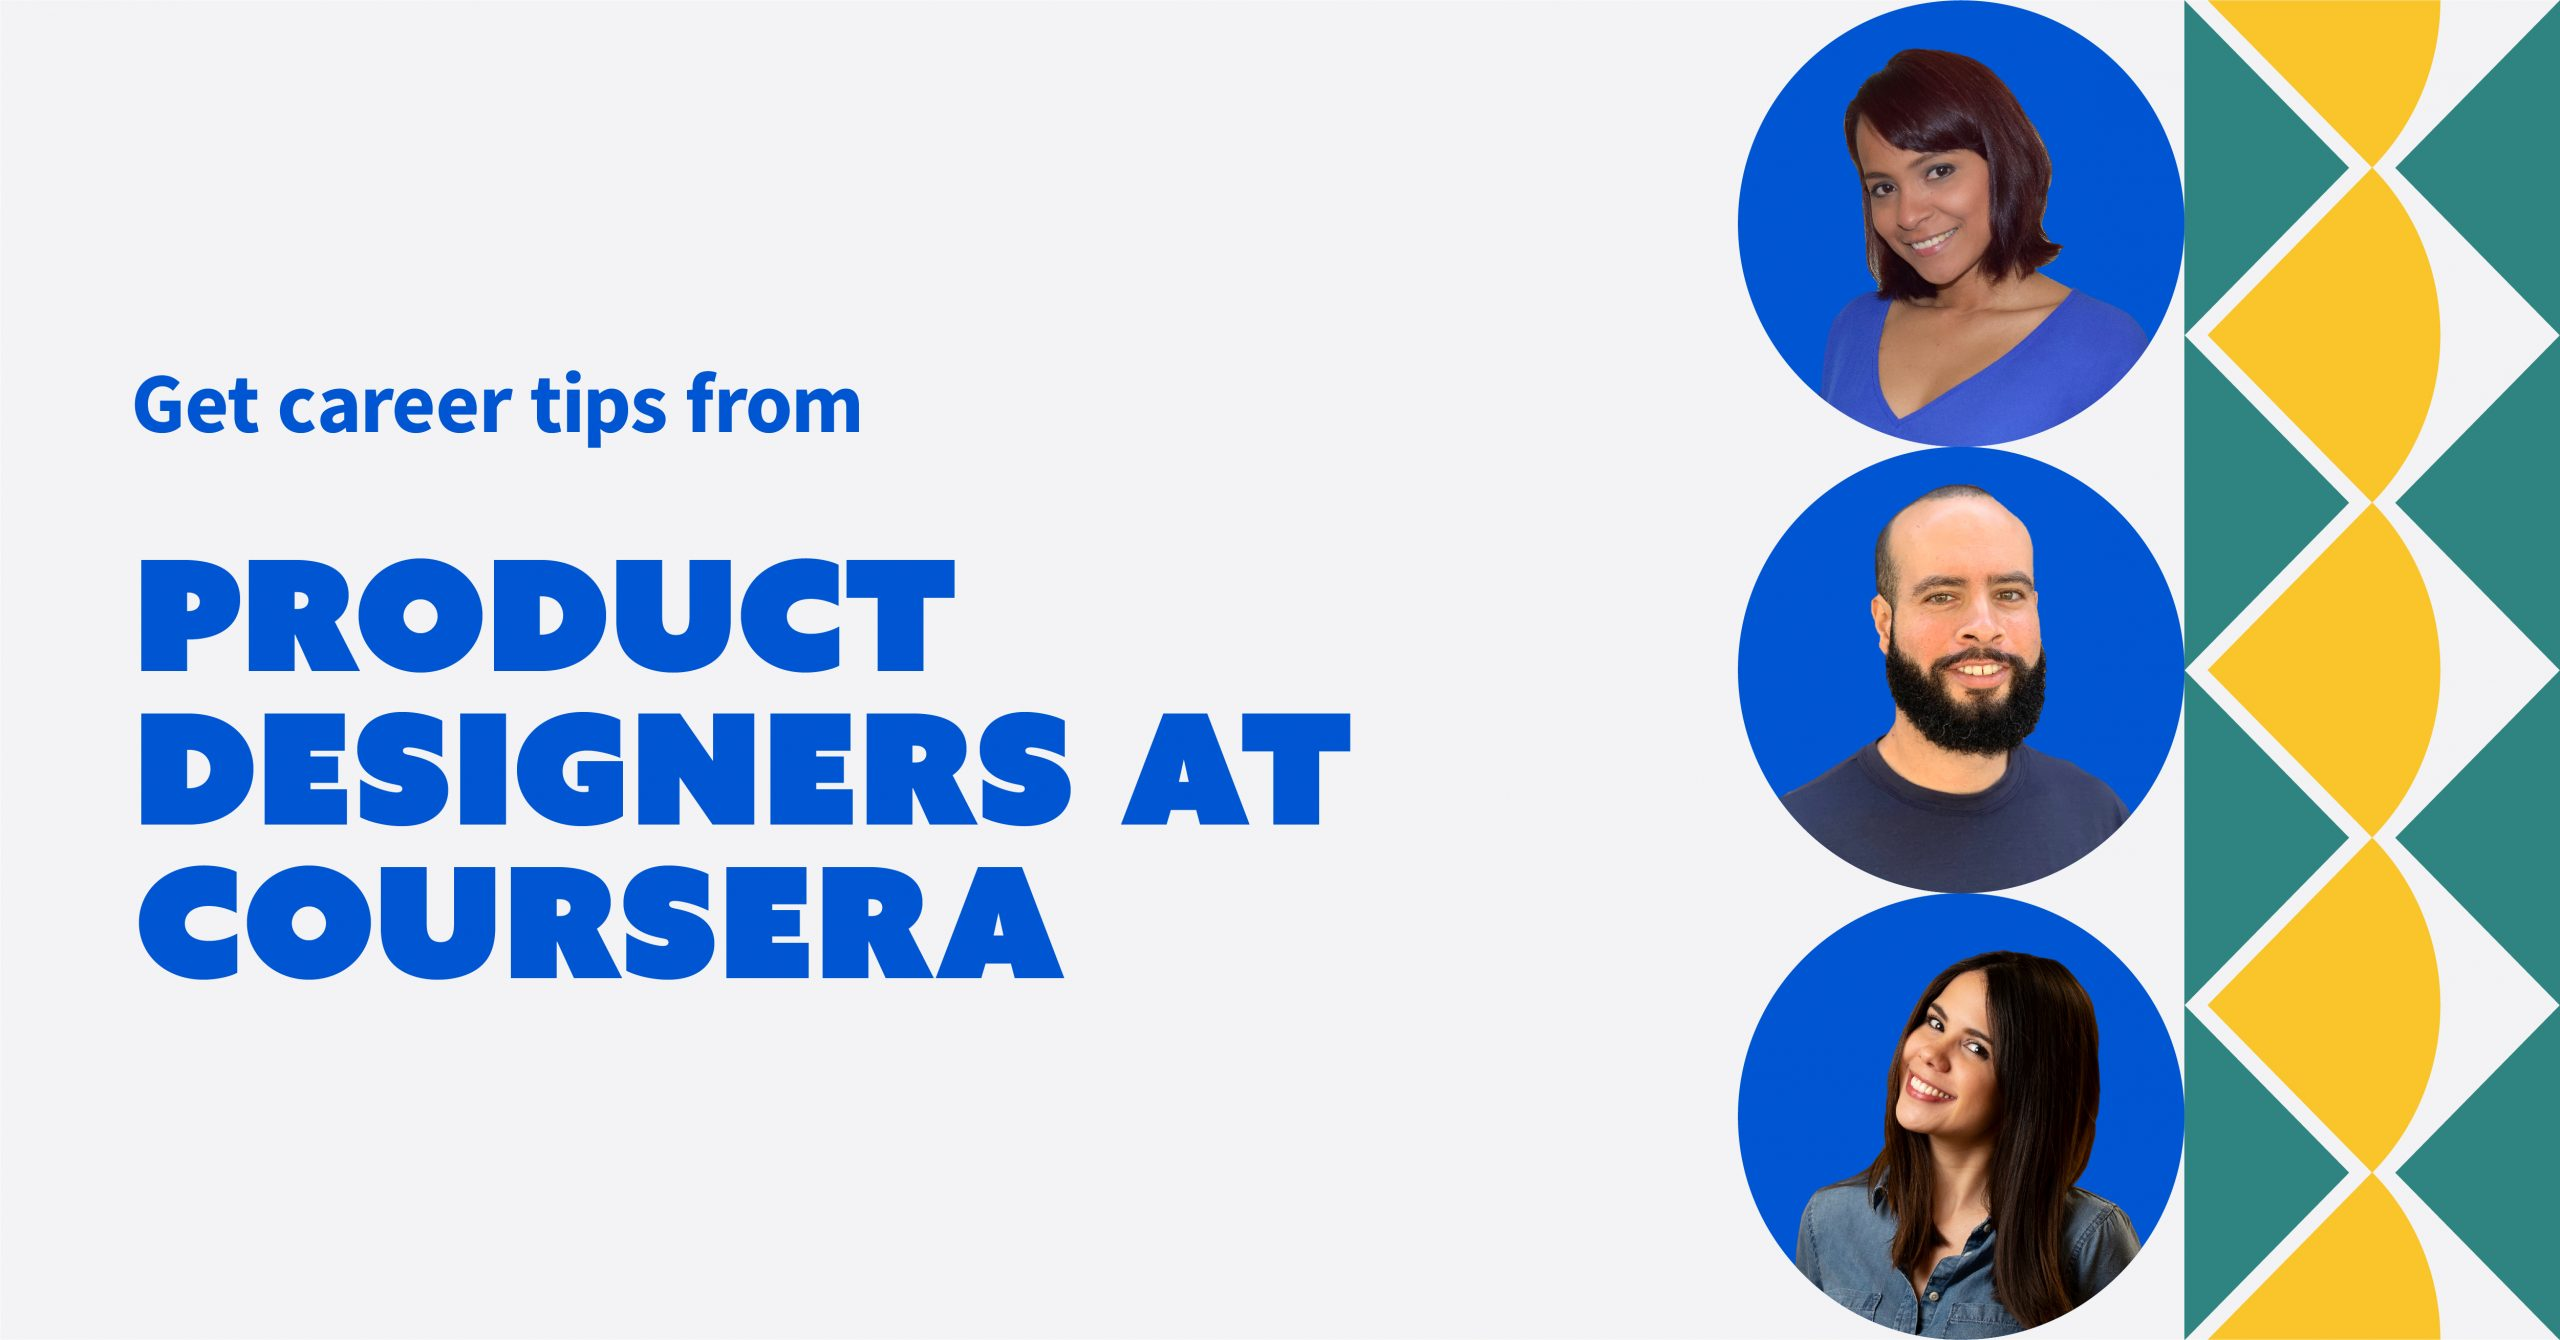 3 Latinx product designers at Coursera share their career journeys and advice for entering the field